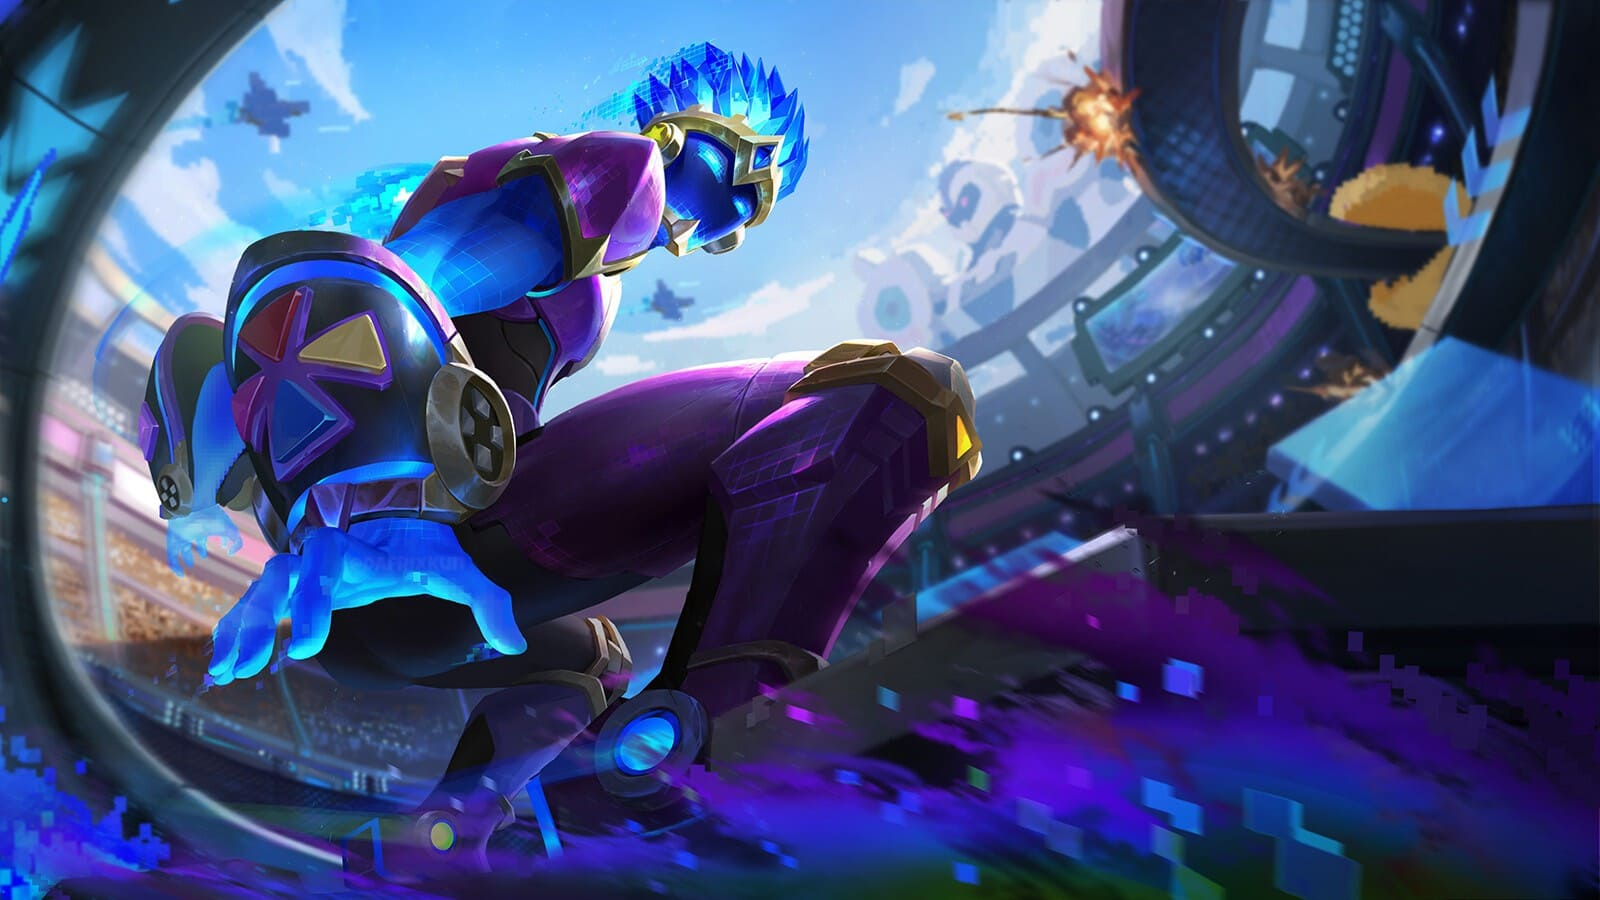 Wallpaper Gord No.1 Controller Skin Mobile Legends HD for PC